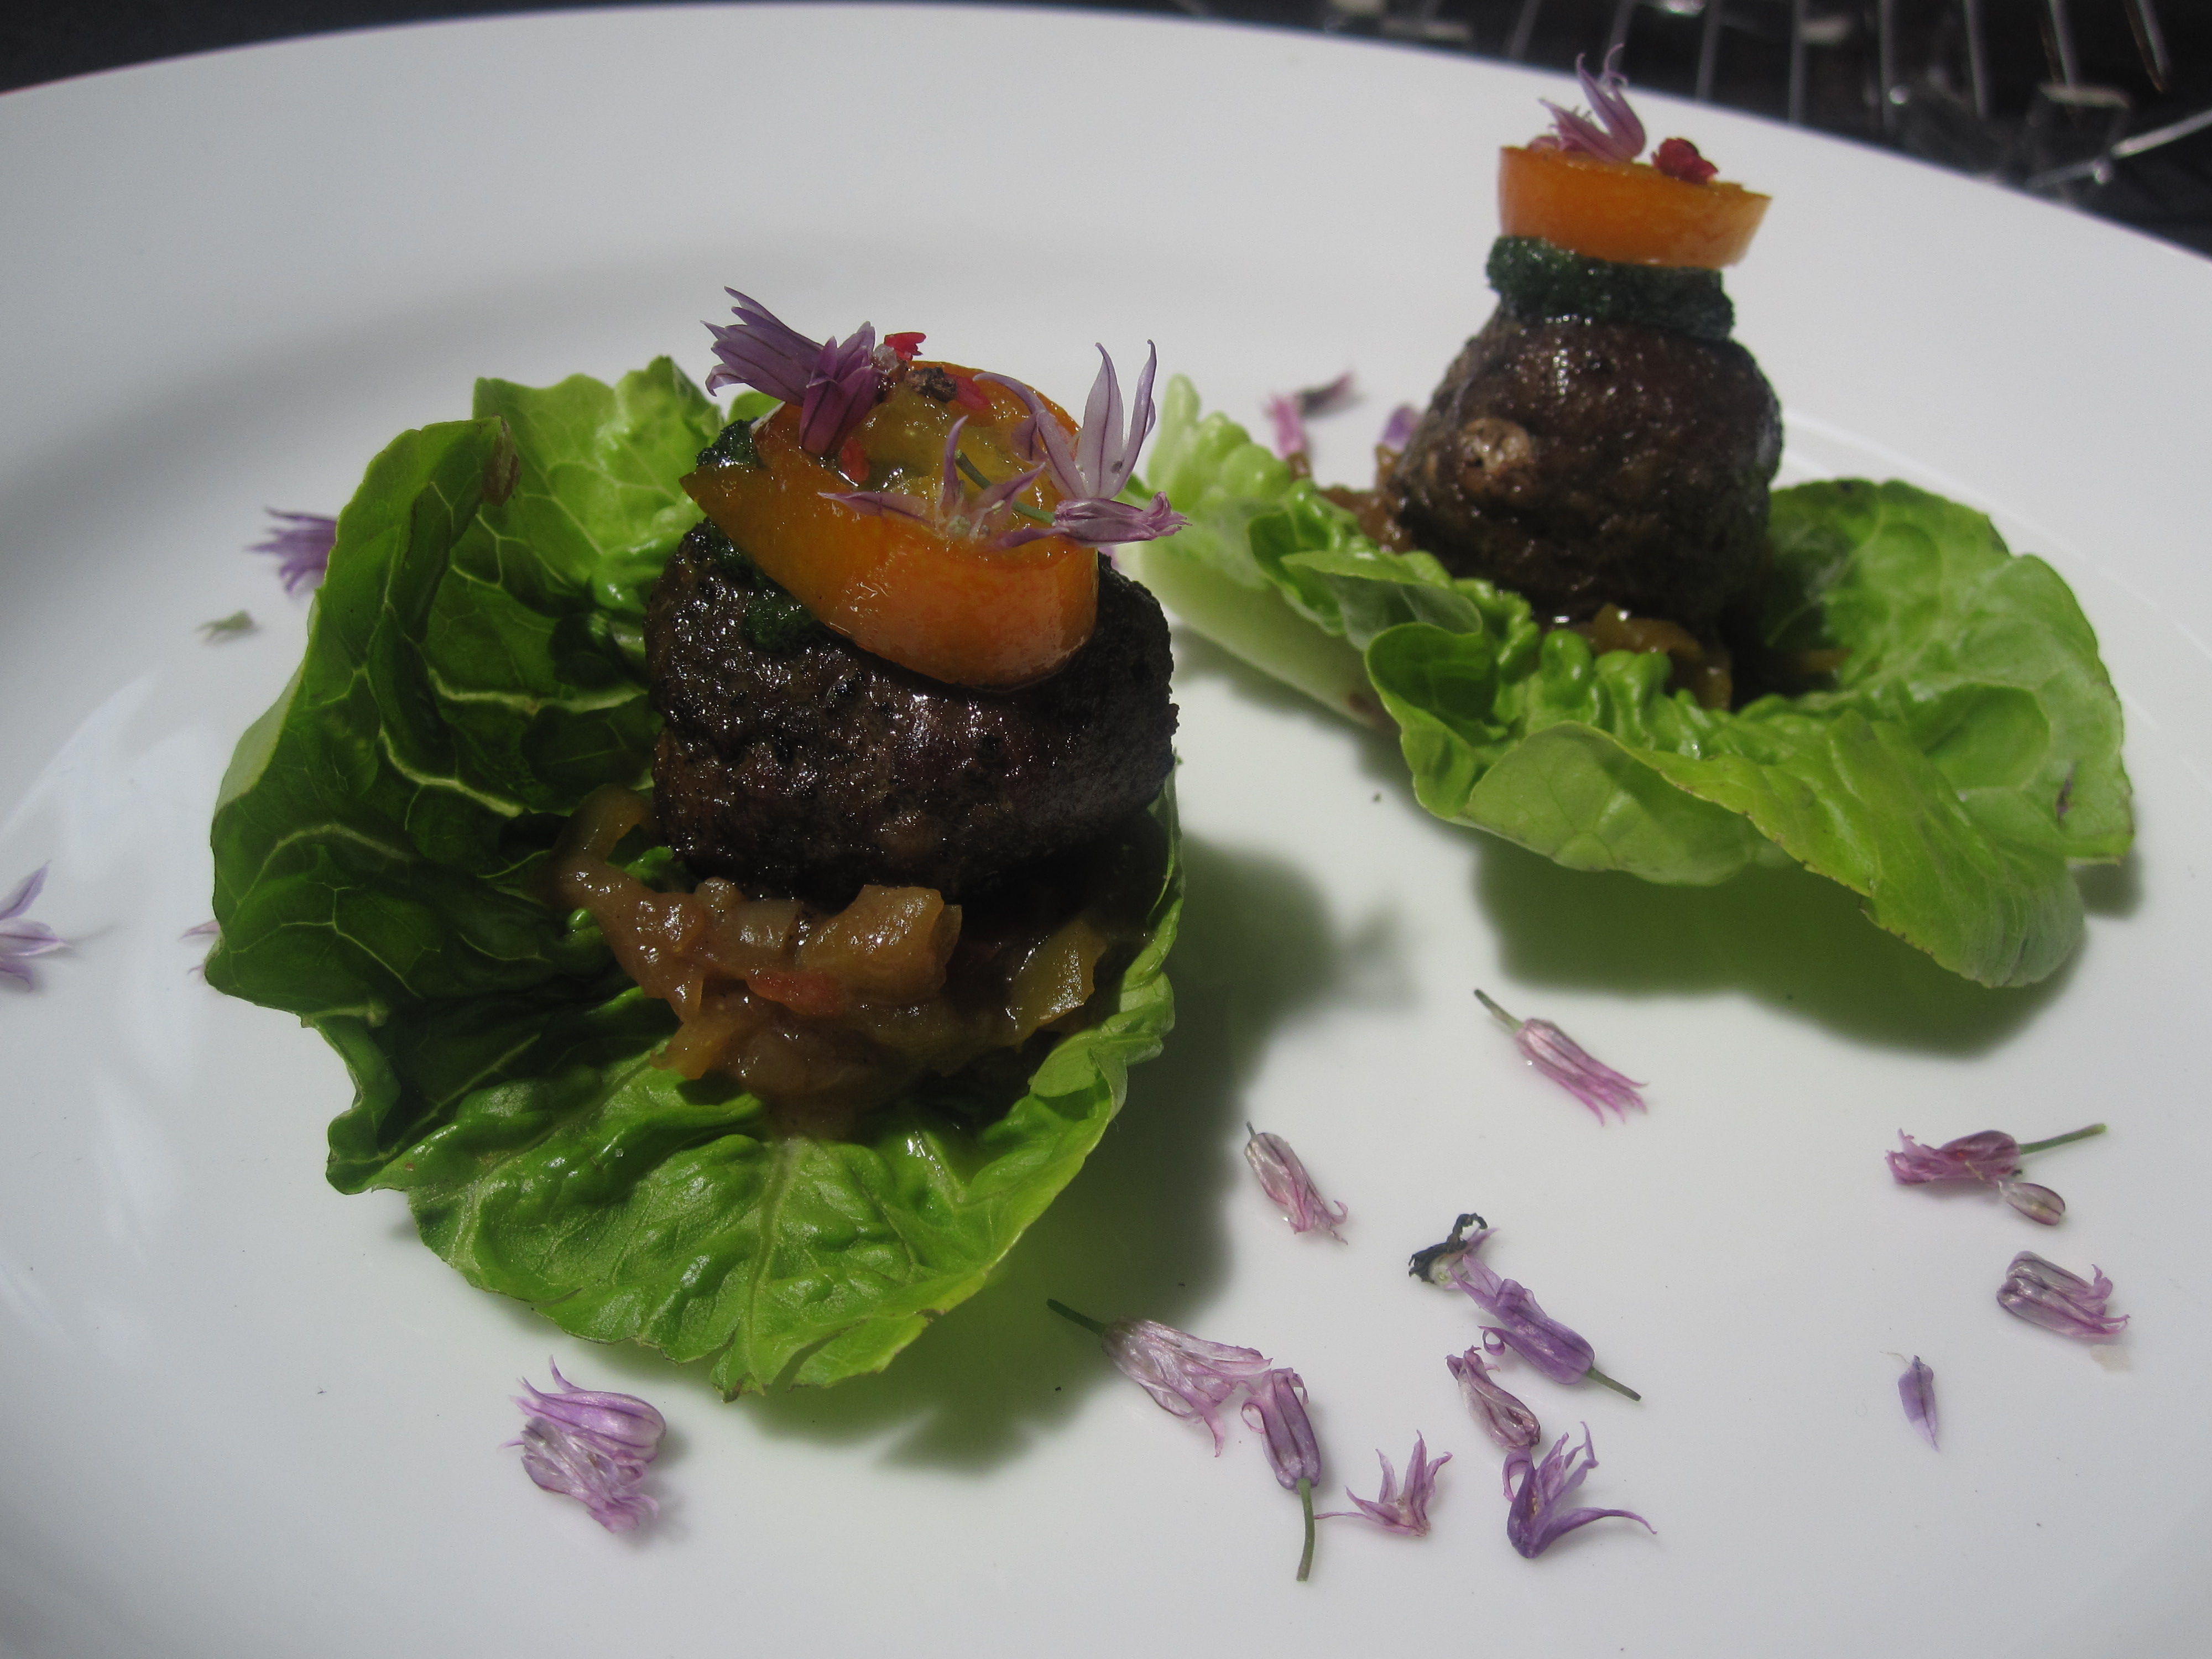 These lamb meatball lettuce wraps won me over with their dainty and beautiful presentation.